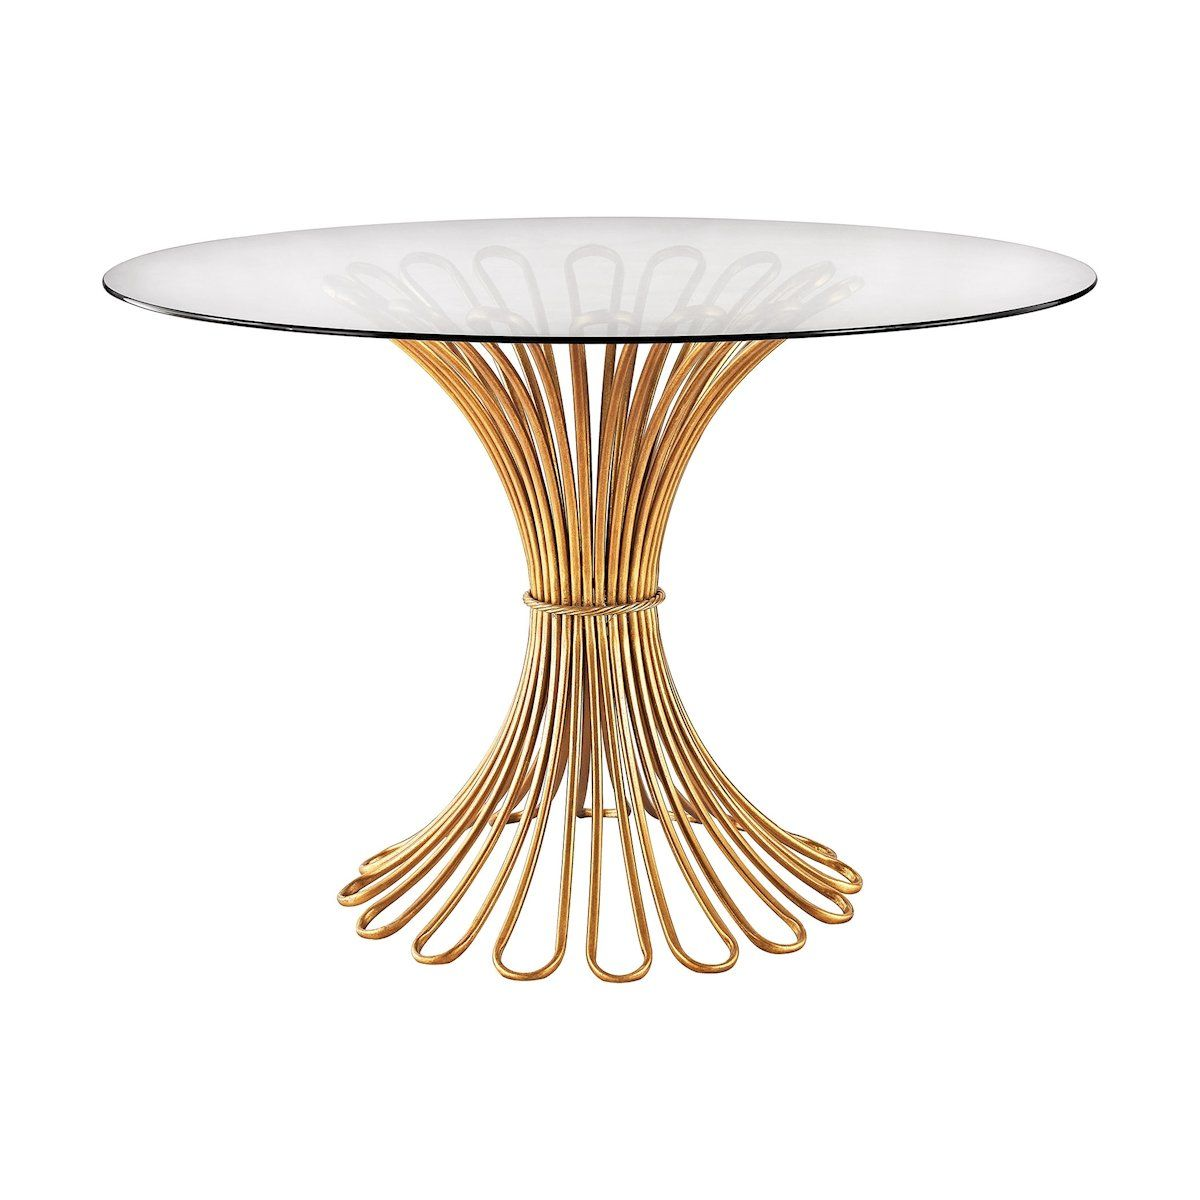 Flaired Rope Entry Table In Gold Leaf And Clear Glass by Dimond Home